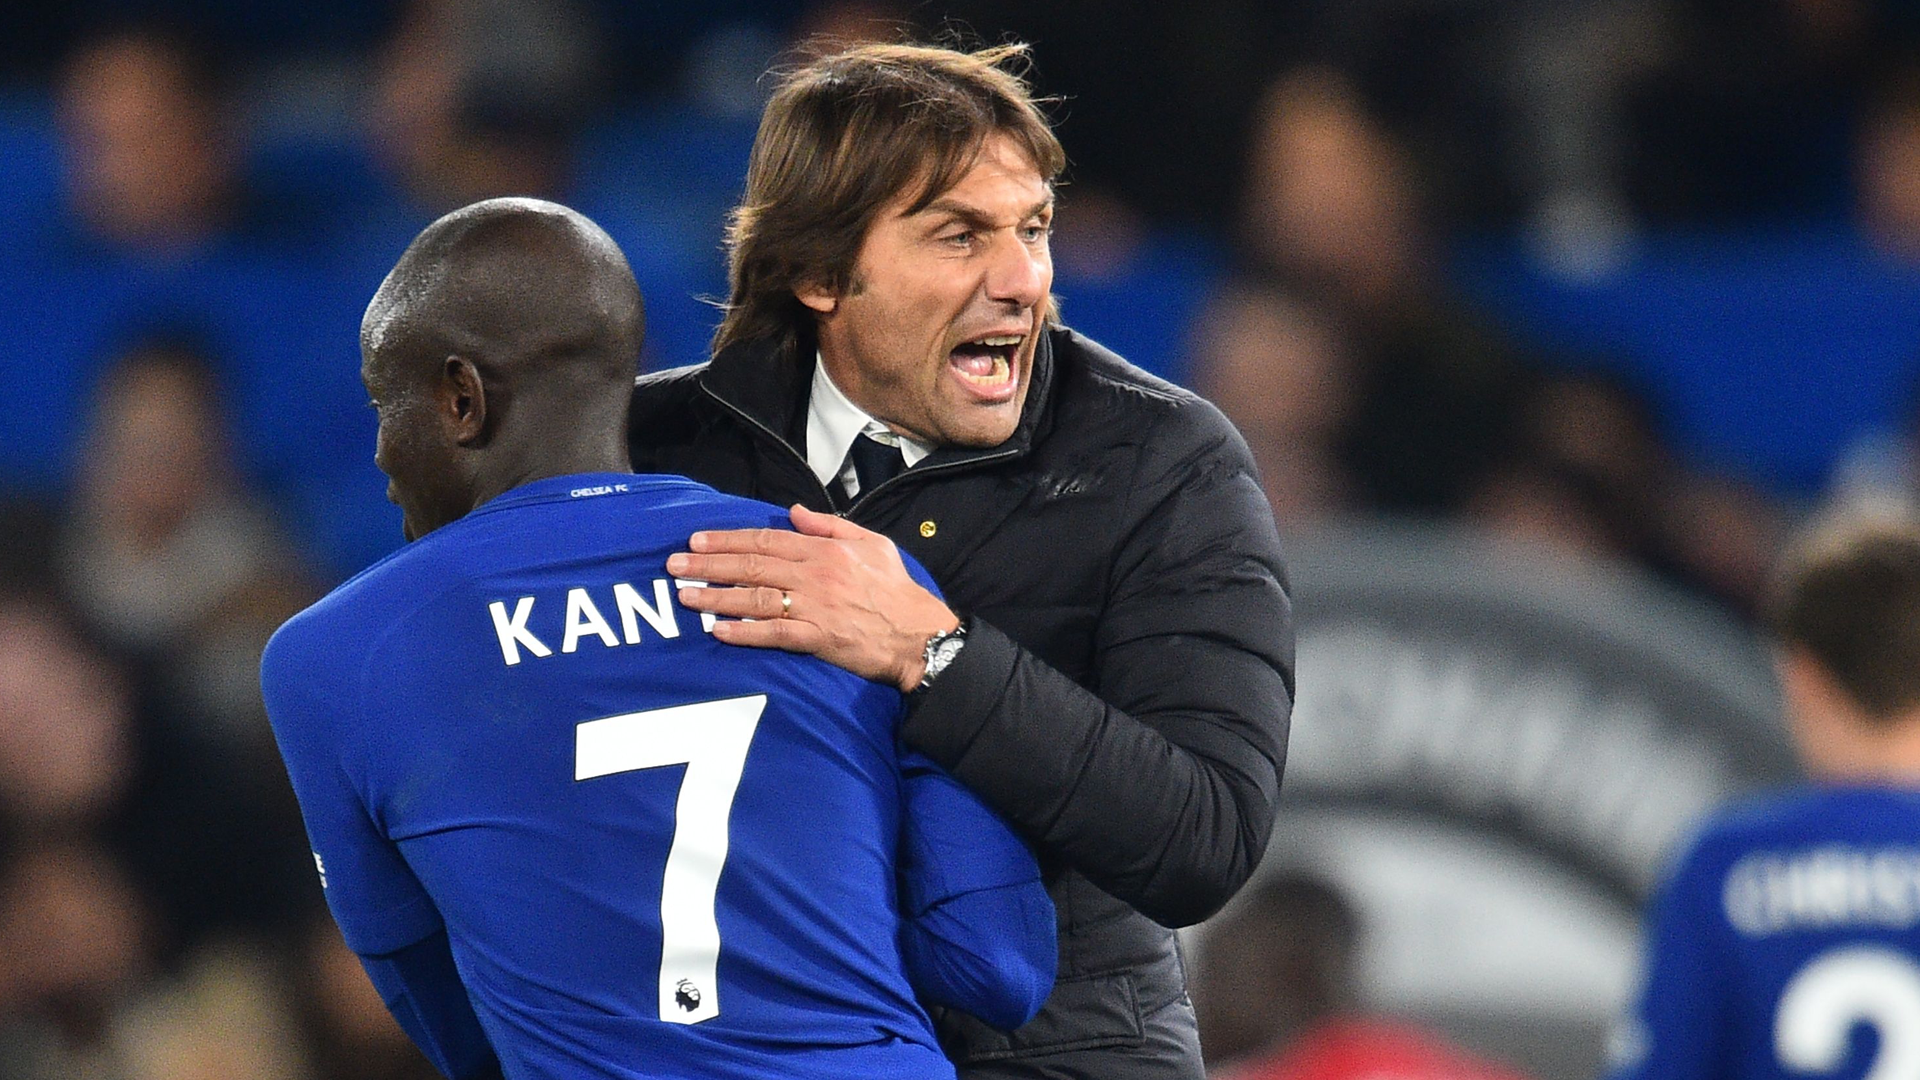 N Golo Kante s eback proves Chelsea simply aren t title